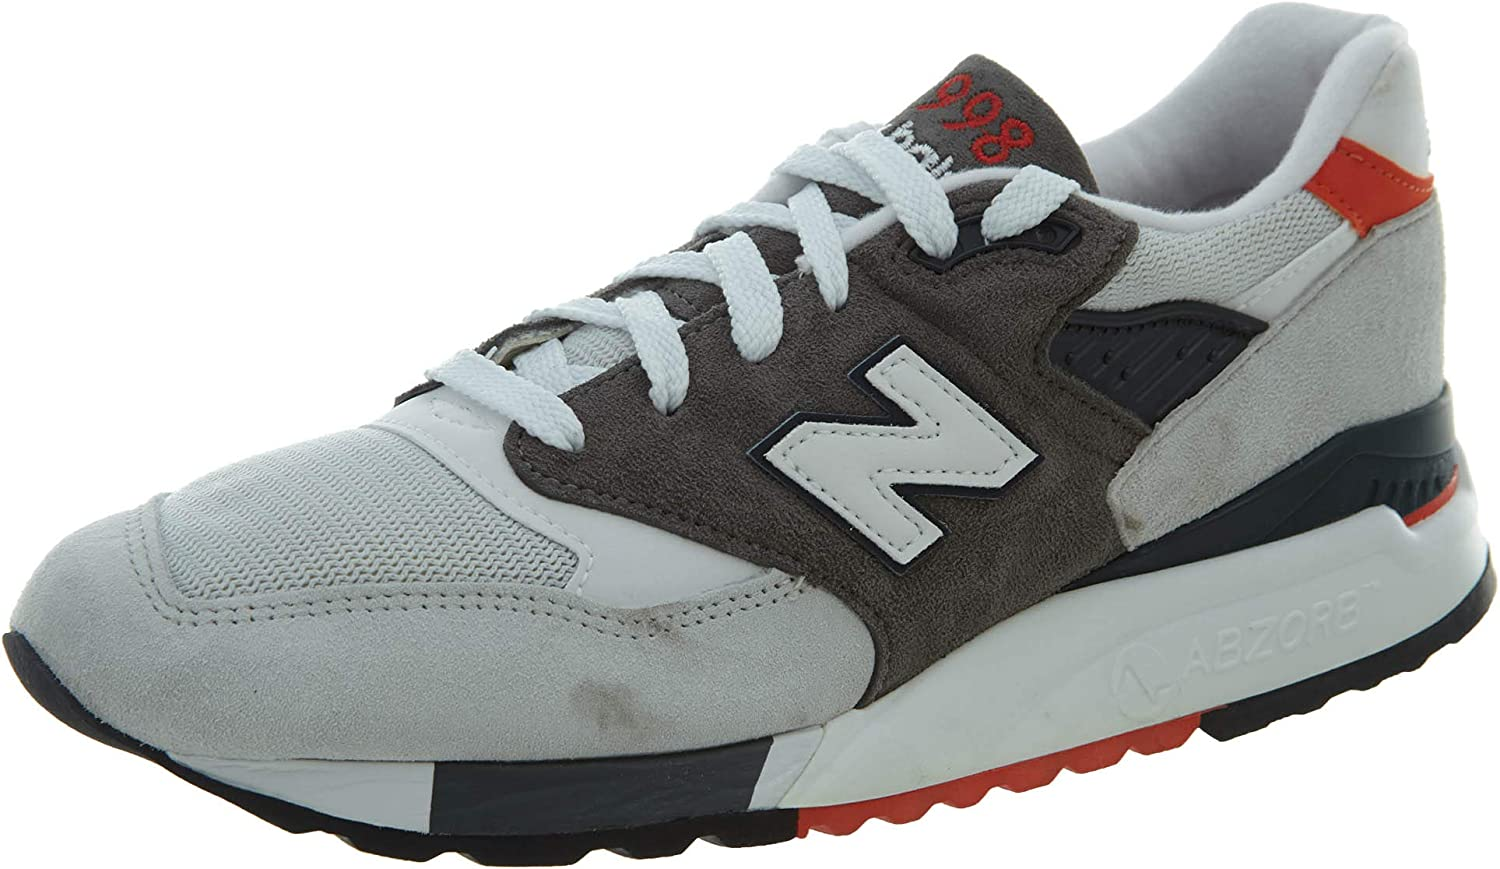 New Balance Men s Connoisseur Retro Explore by Air 998 Sneakers – Grey